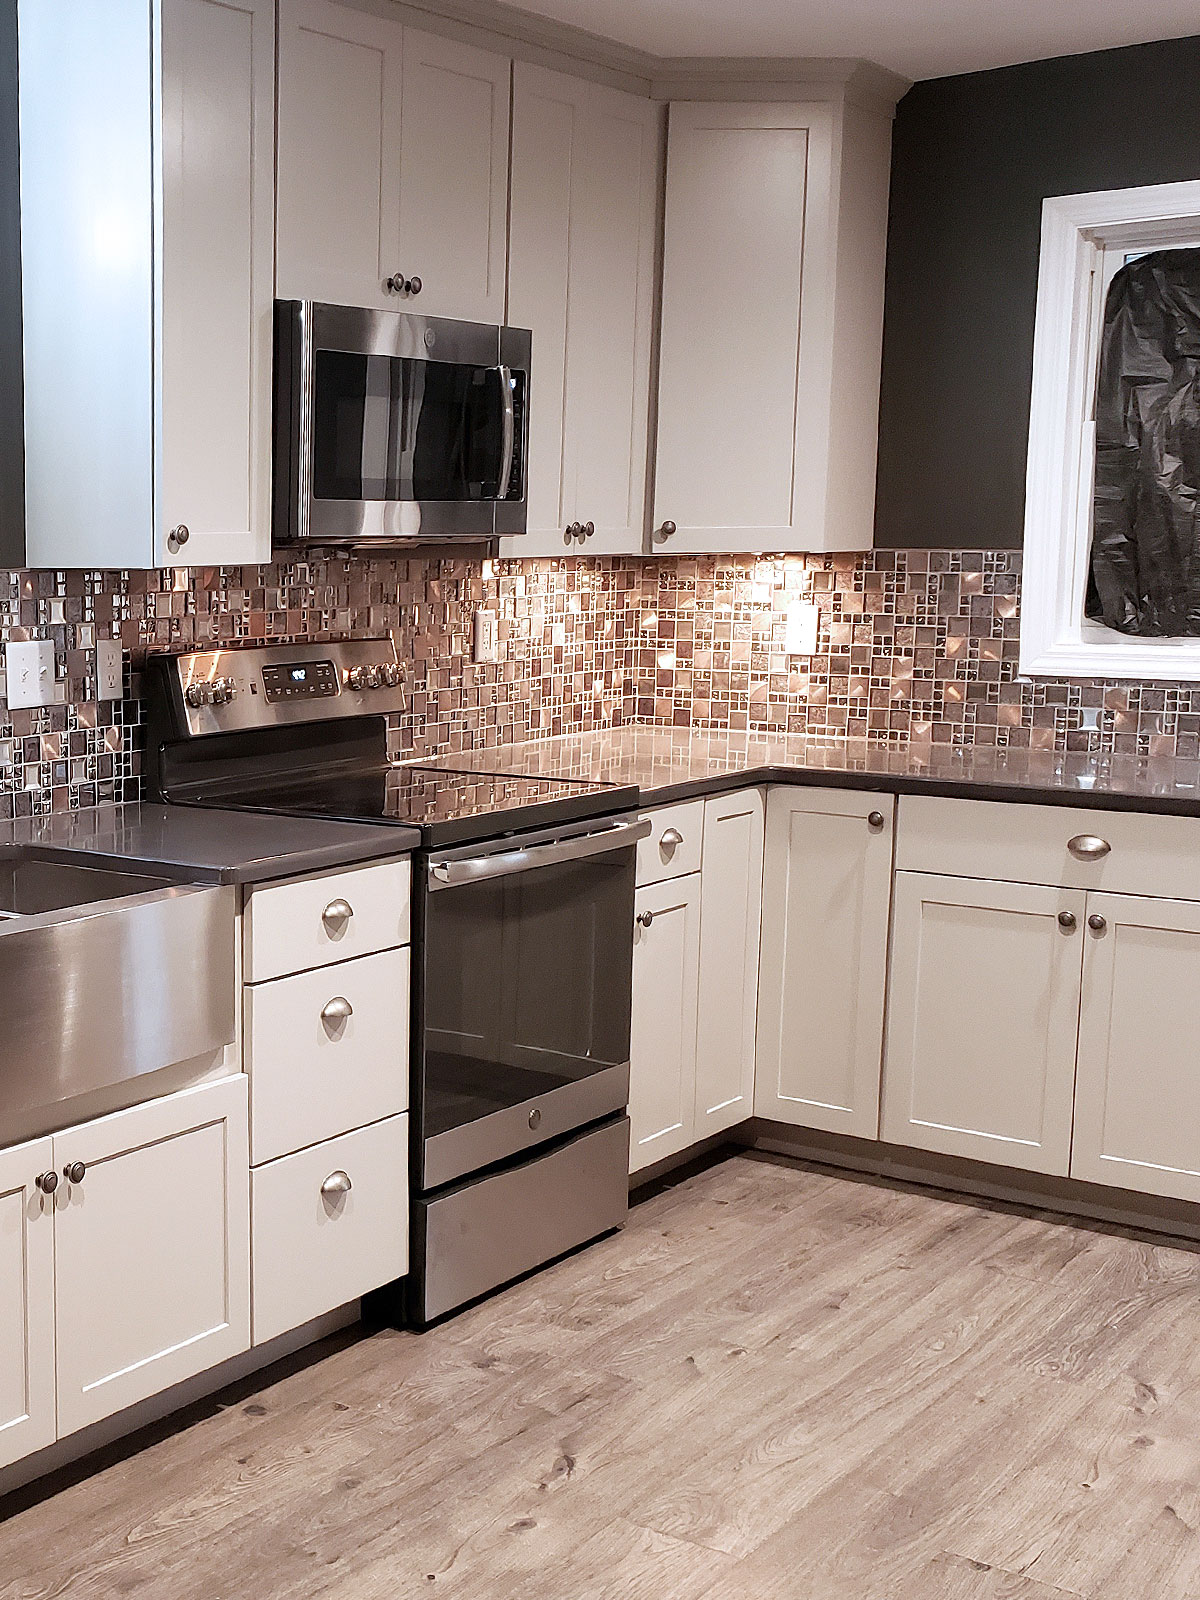 White cabinet brown quartz countertop backsplash tile BA62010